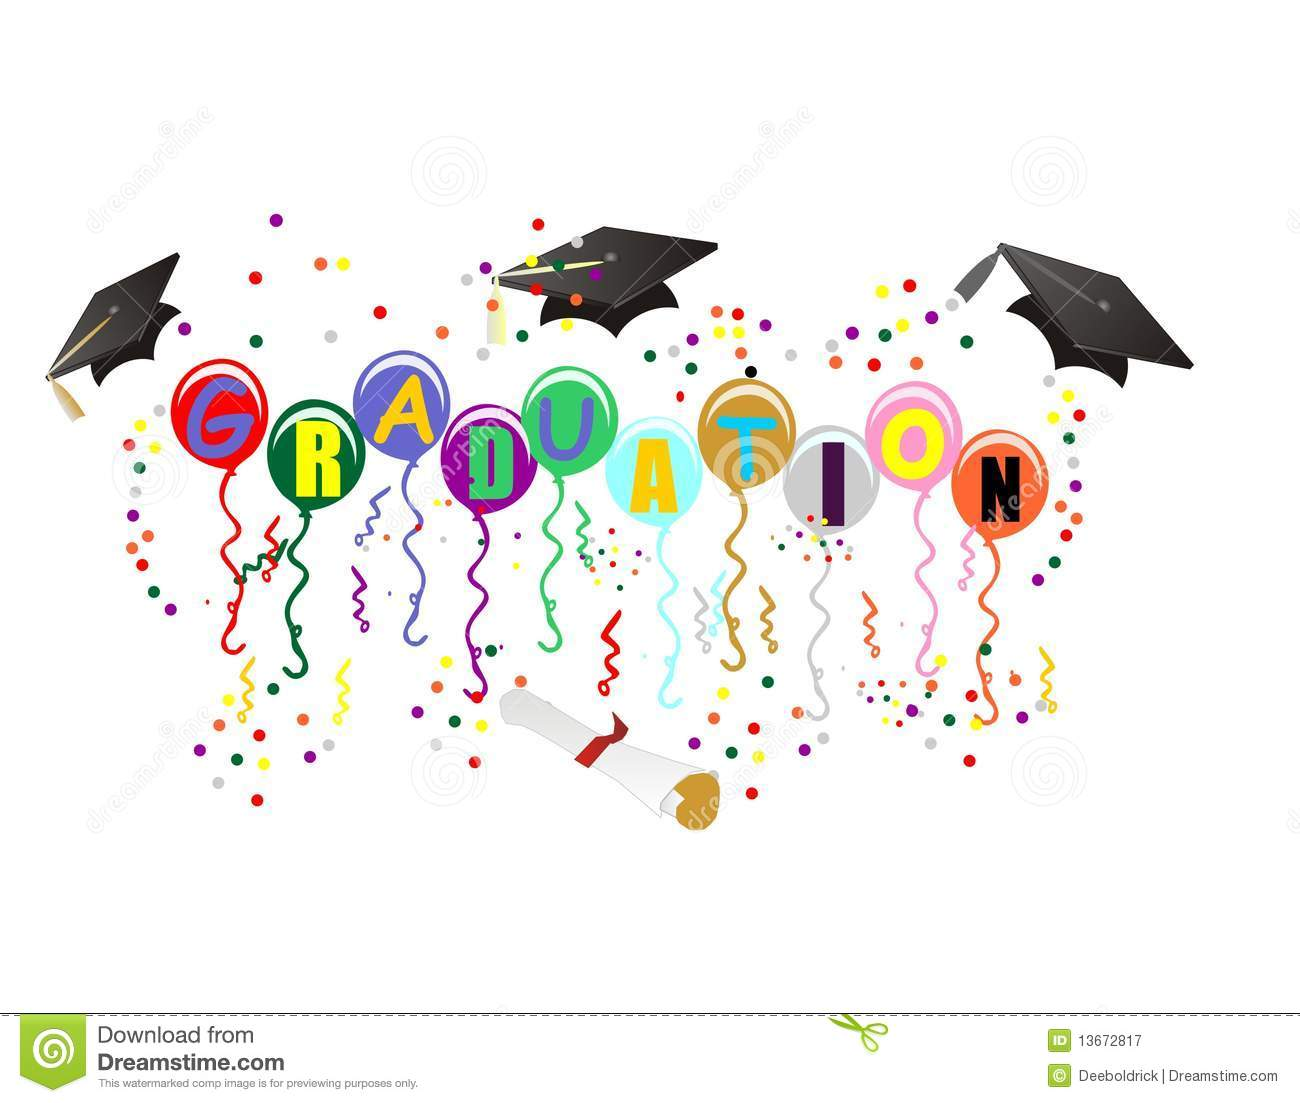 Graduation Ballons For Celebration Illustration Royalty Free Stock ...